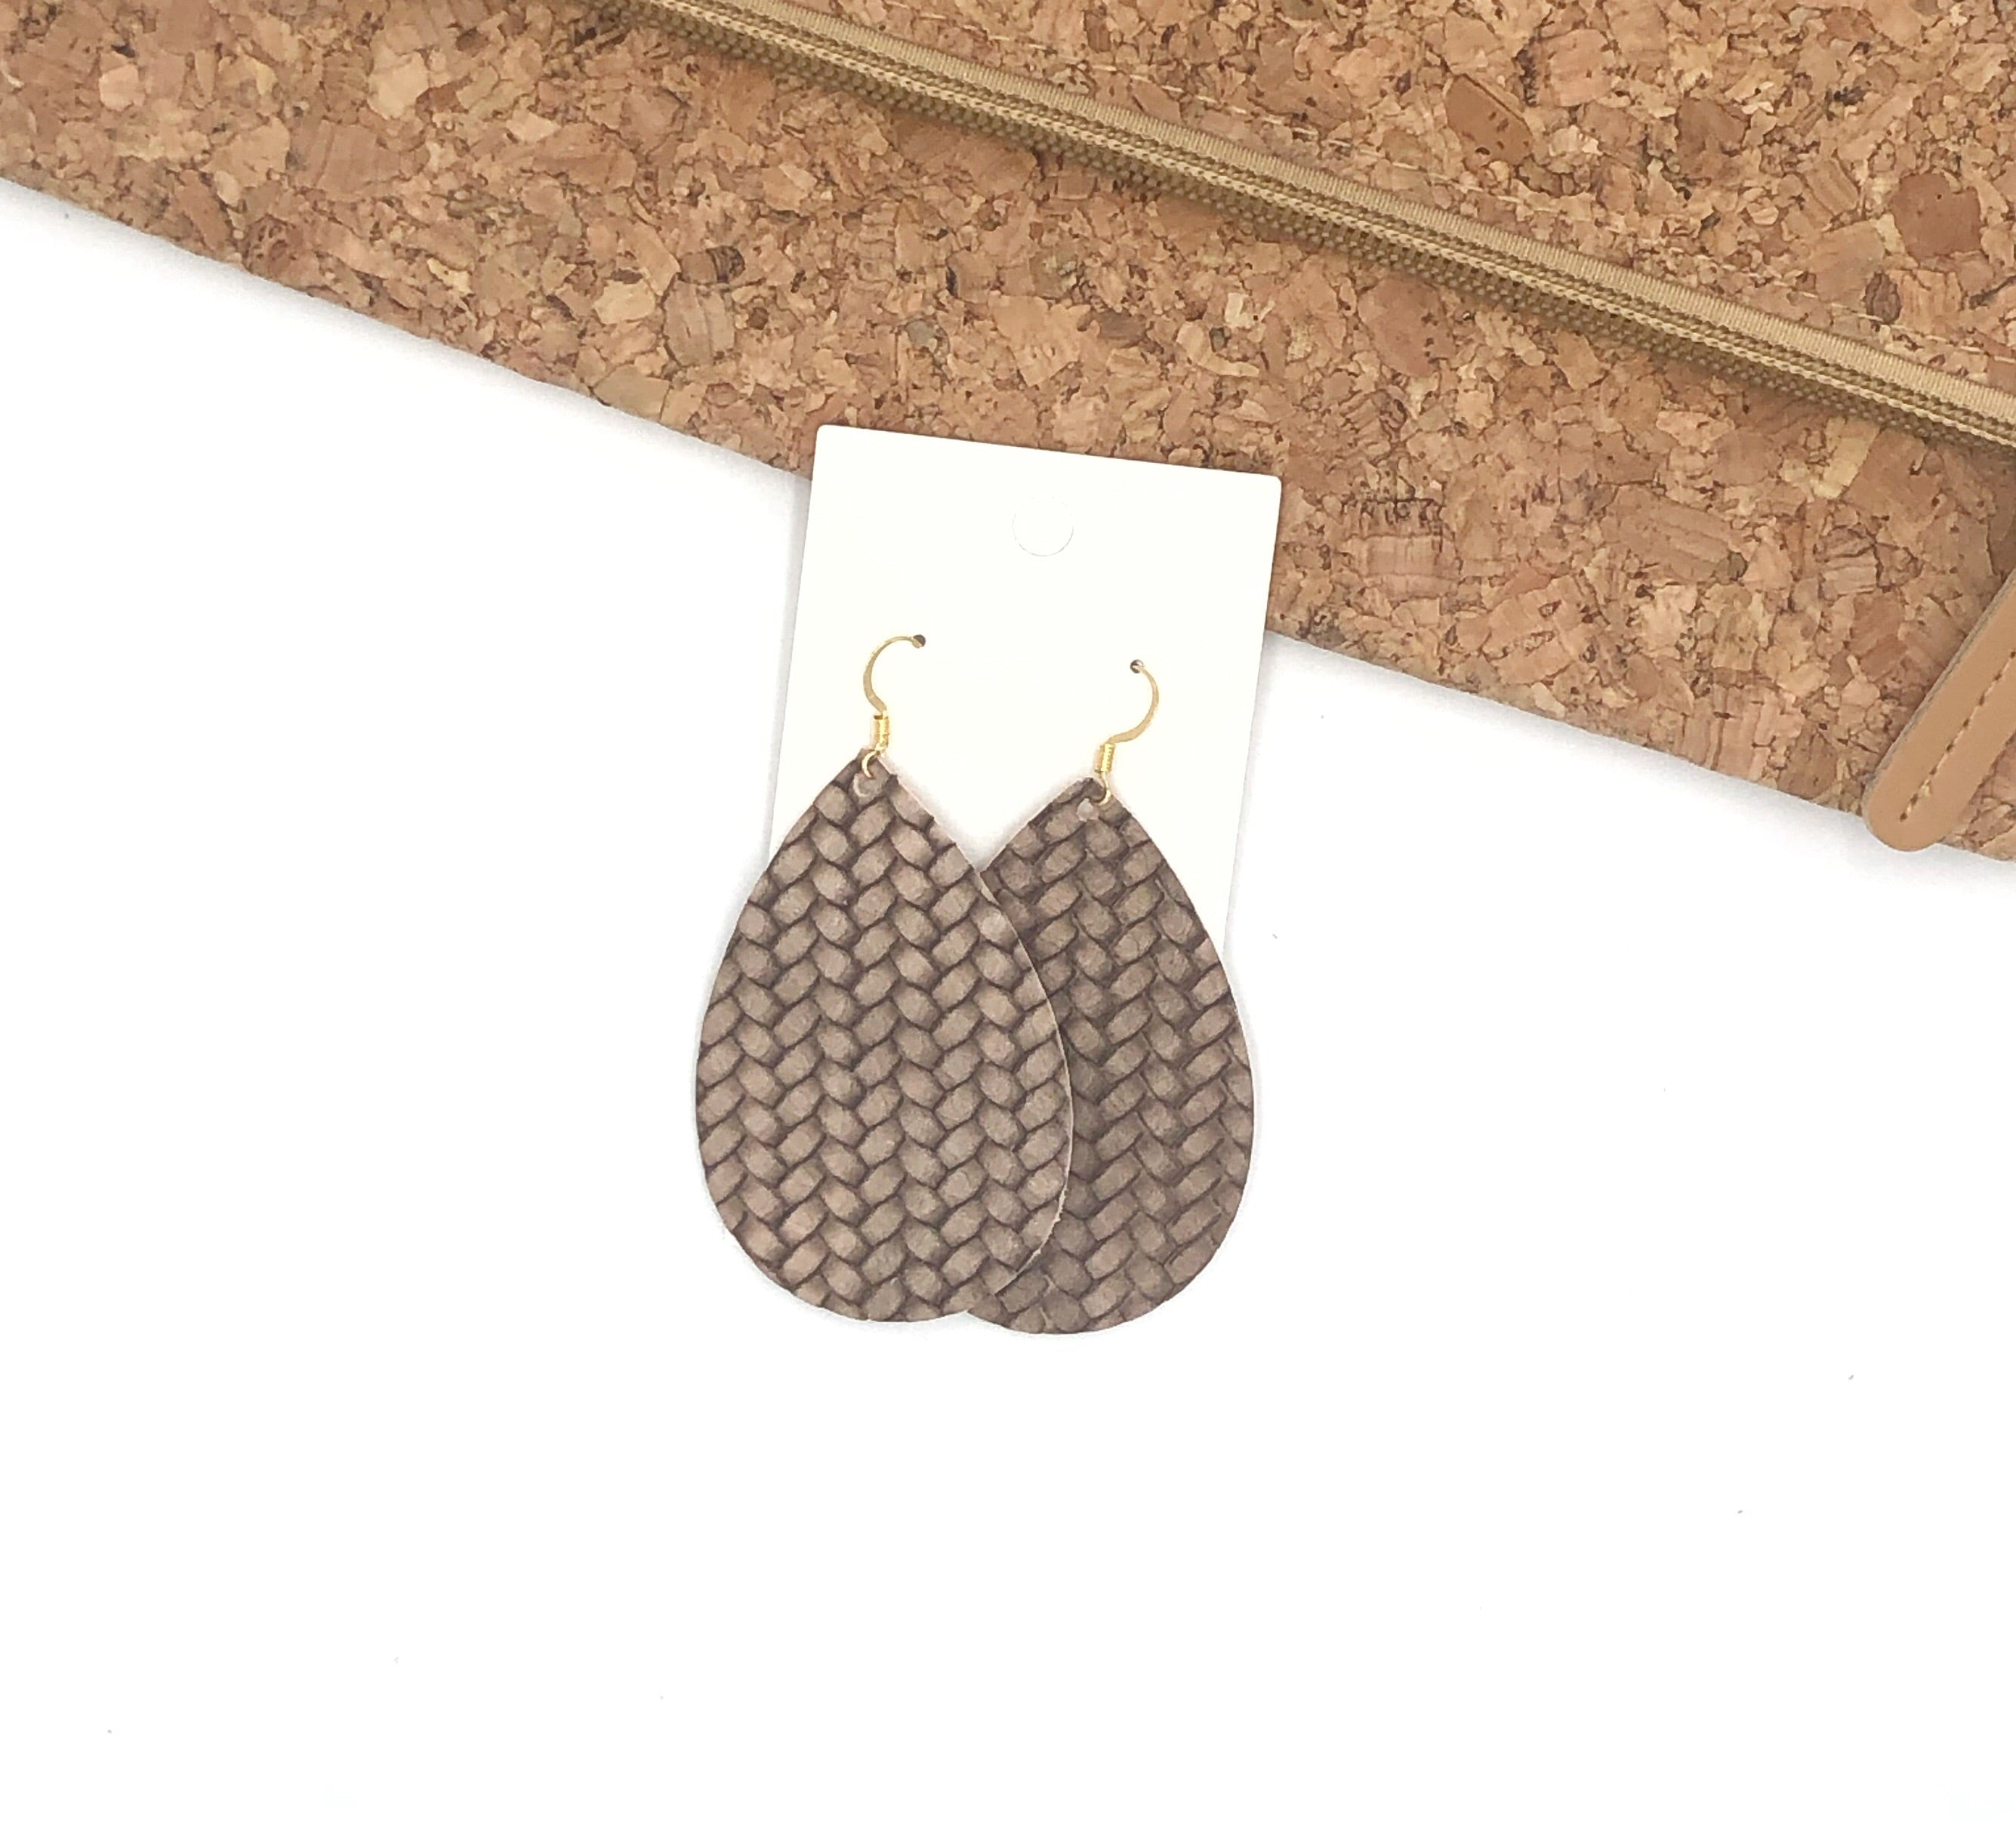 Mocha Braided Leather Teardrop Earrings